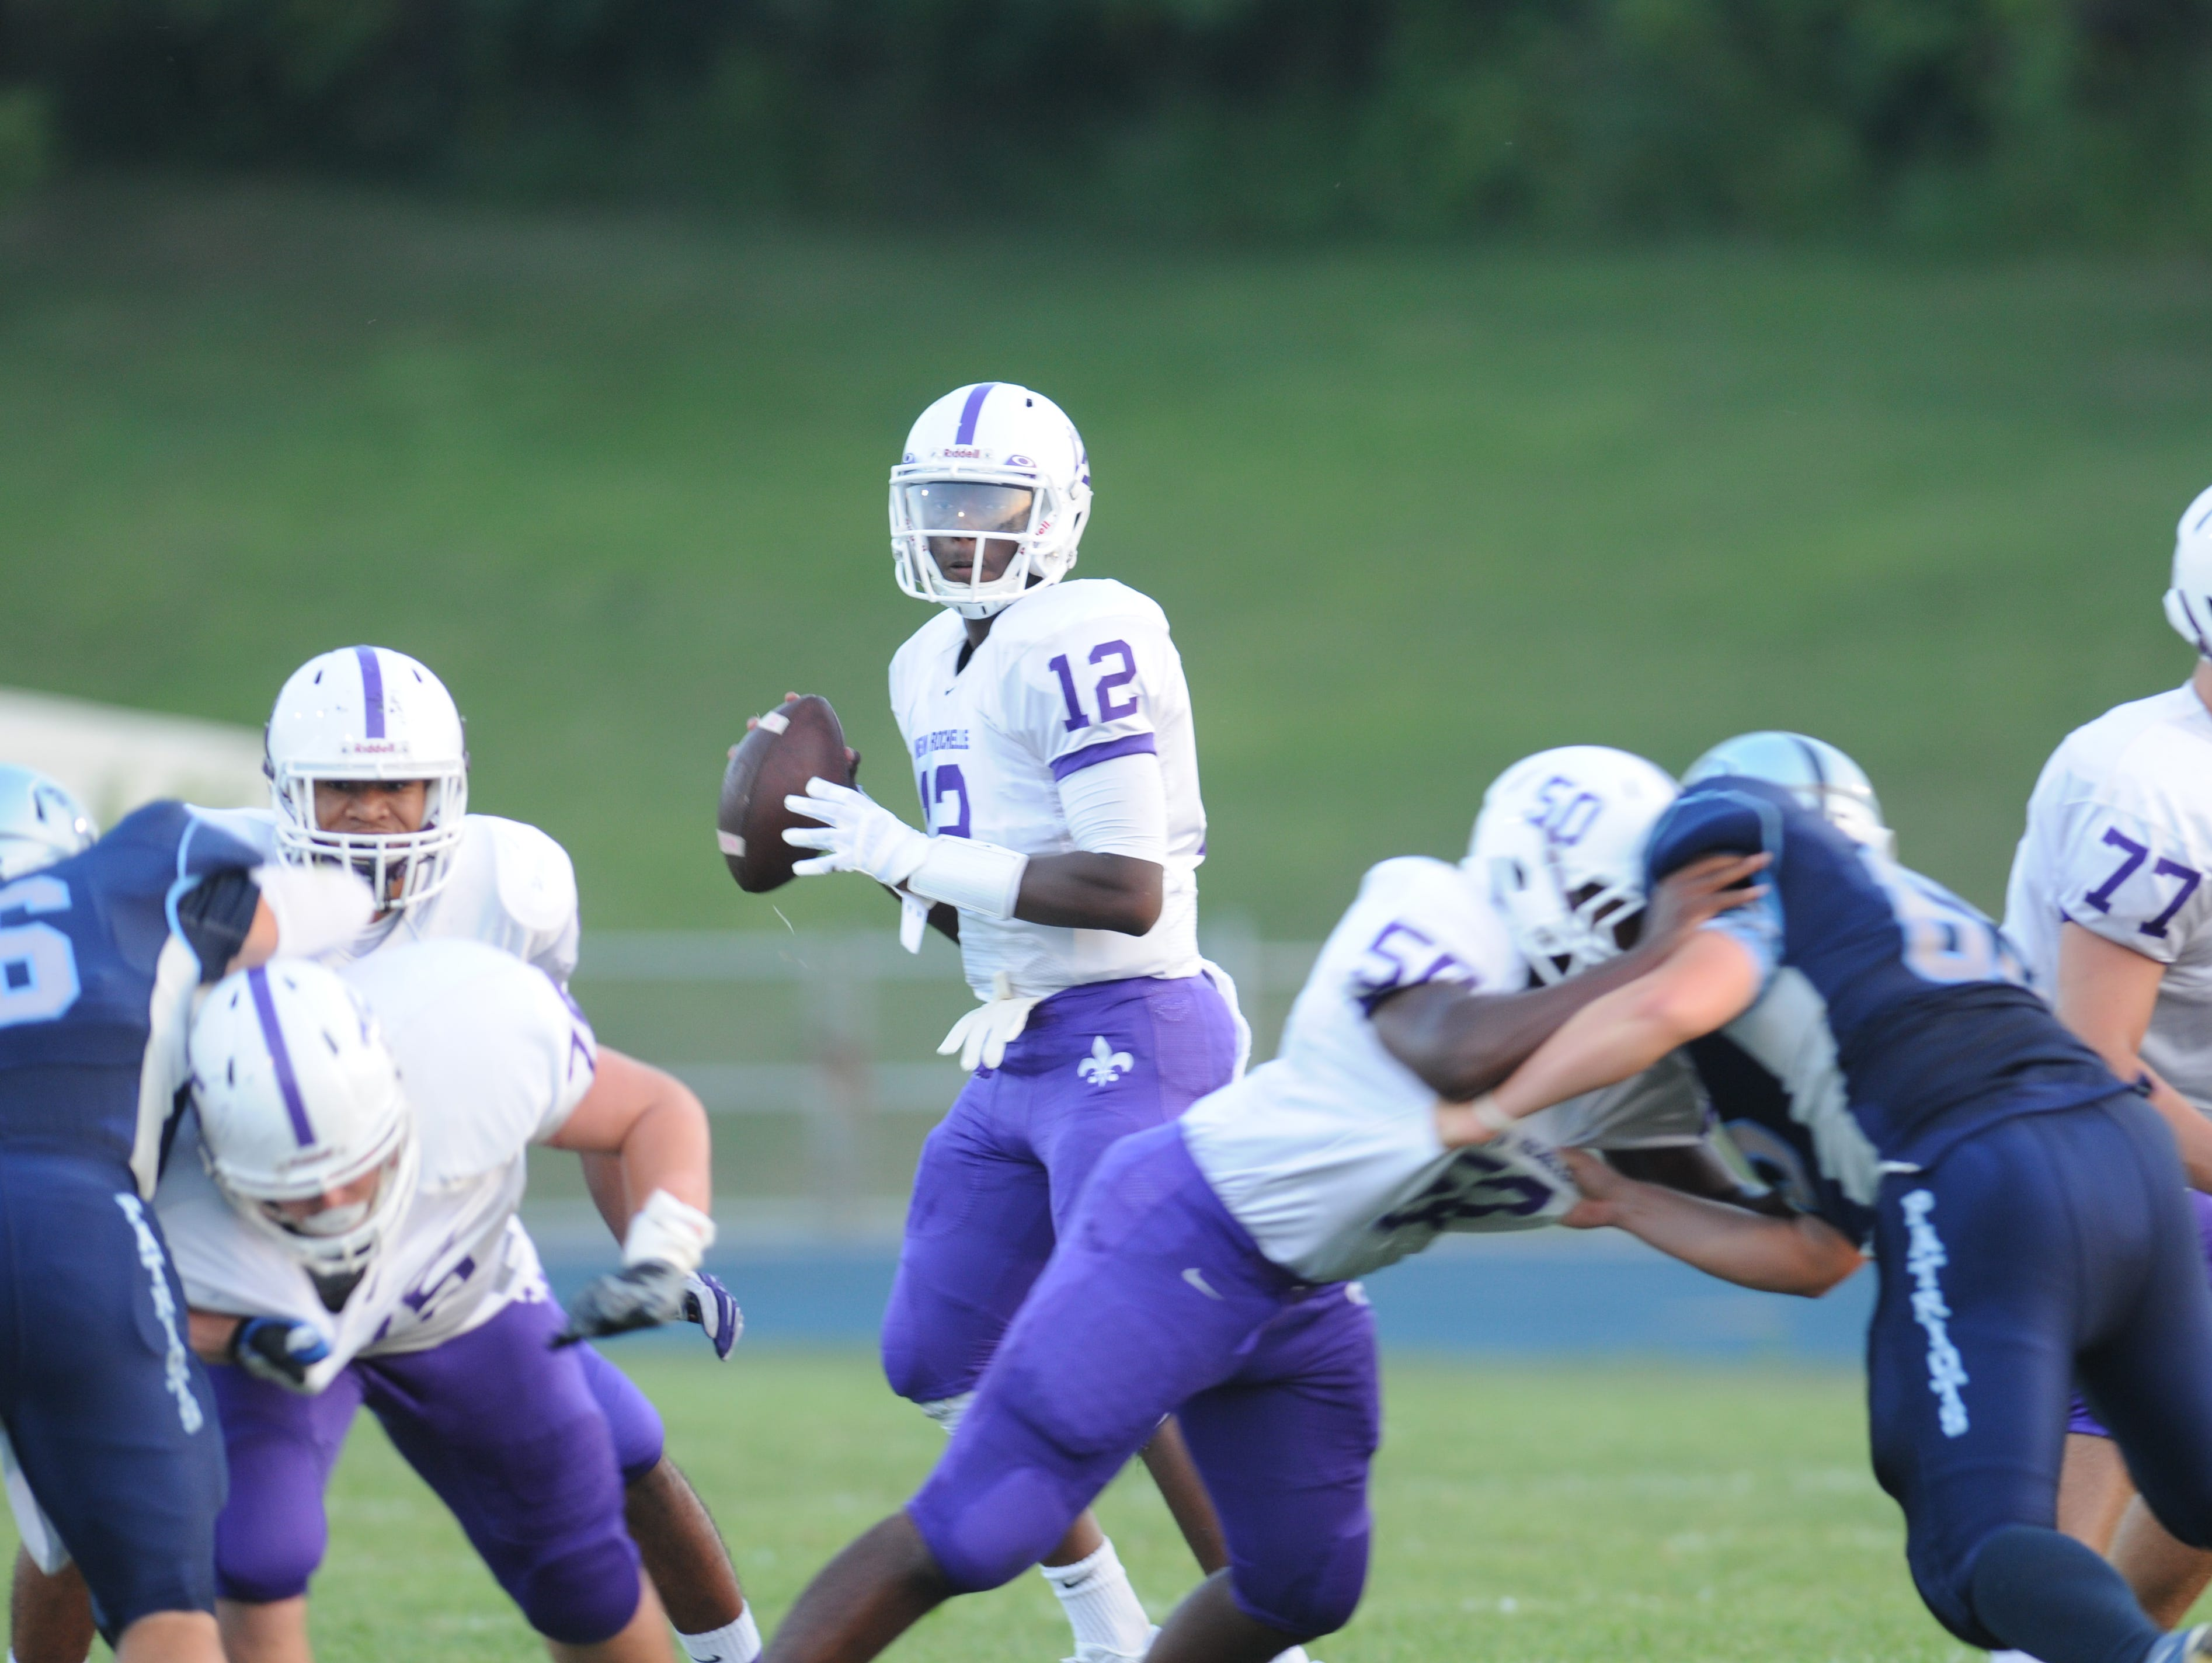 Action from Fridays game between John Jay High School and New Rochelle in East Fishkill.